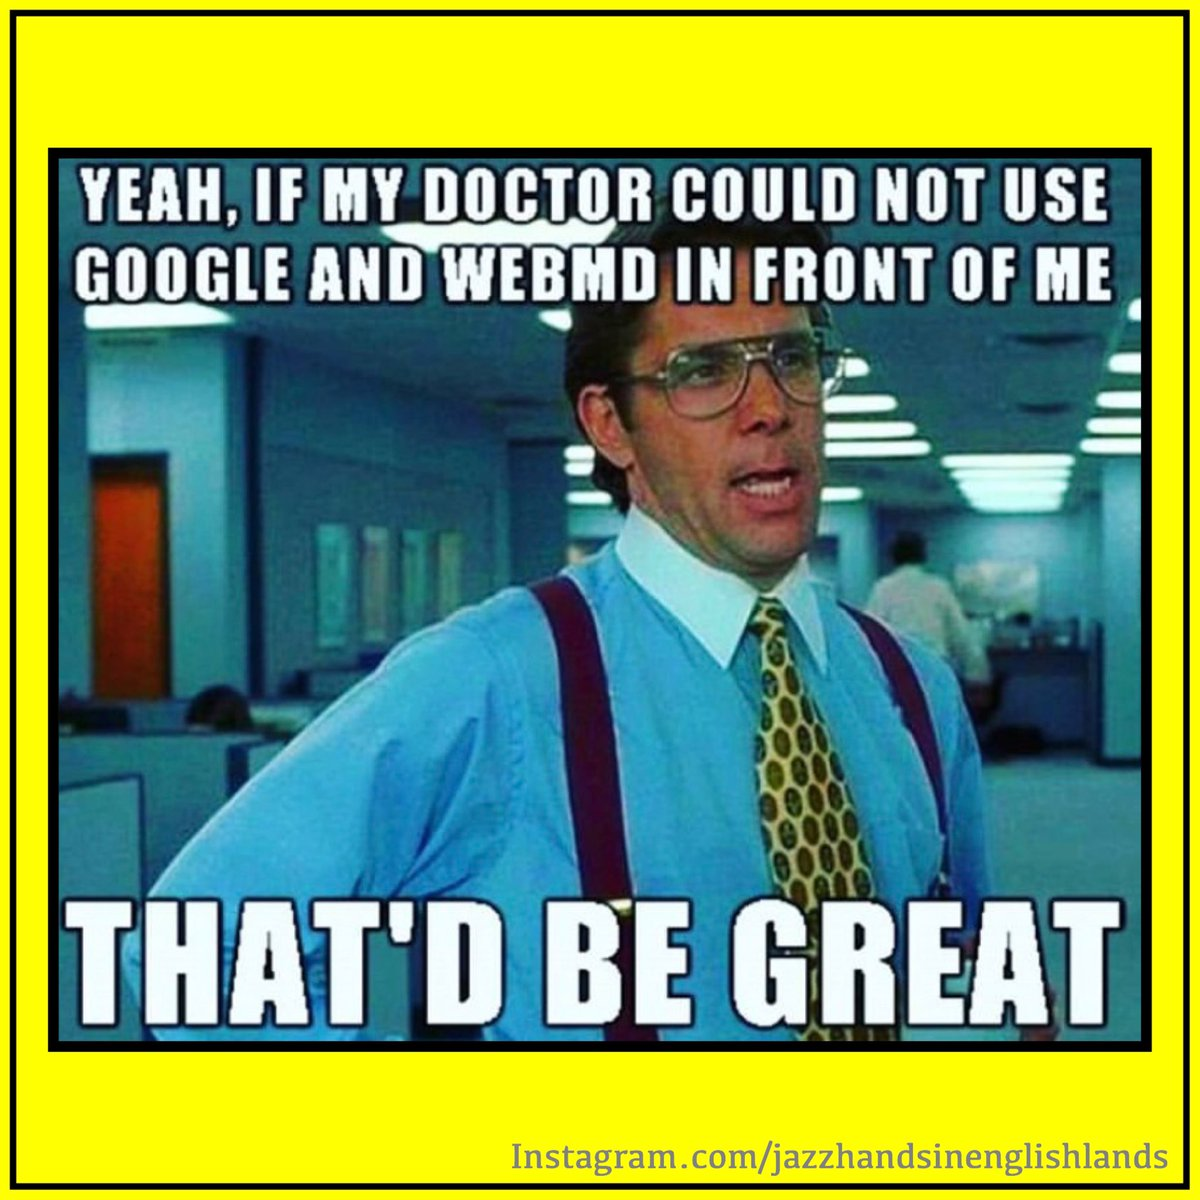 Dr Google  #Doctor #DrGoogle #DoctorMemes #MedicalMeme #Busted #ComeOnNow #NoShame #SoWeird #ThatWasntSupposedToHappen #YeahDontDoThat #Awkward #DontGetIt #CheekyBugger #DontMindMe #GoodLuckWithThat #HaaangOnAMinute #ICanSeeYou #WhatDidYouDoThatFor #Truth #DoubleTake @Kathbumpic.twitter.com/8h8KKJW8bH